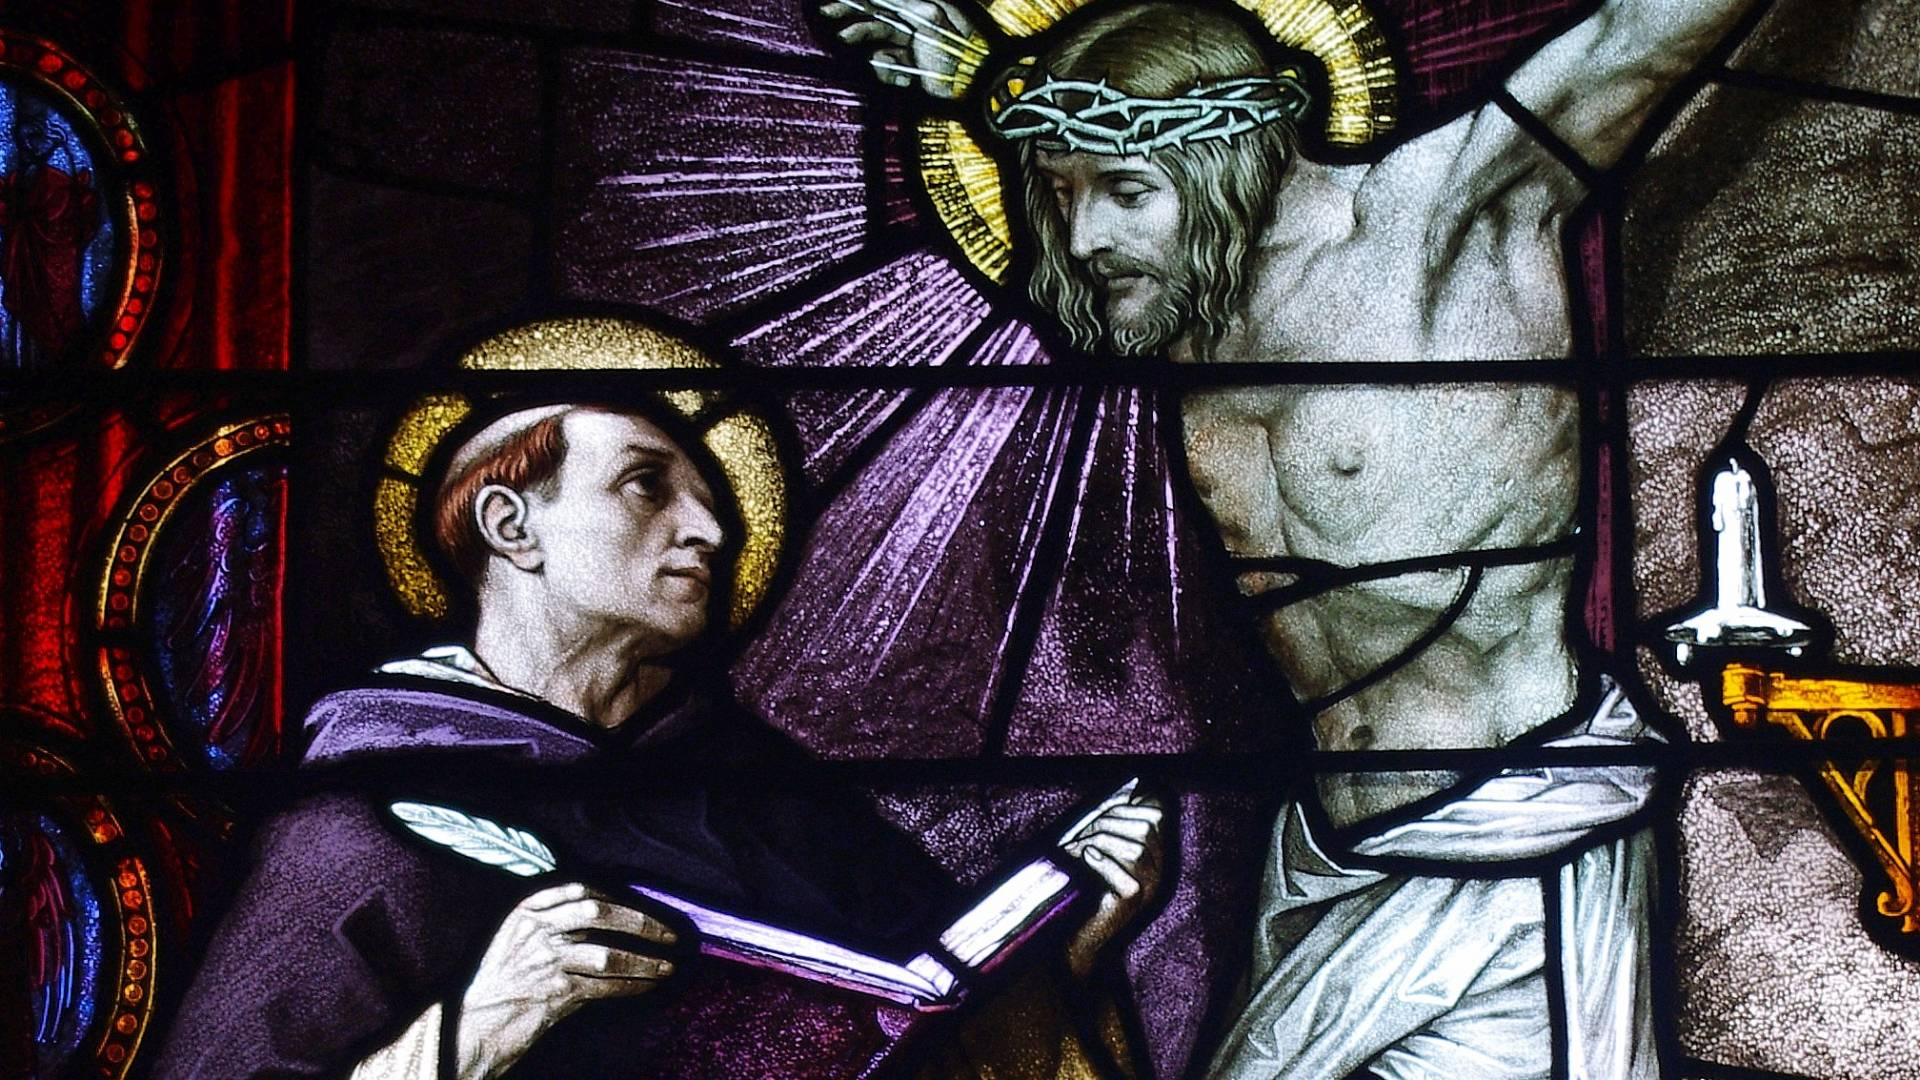 St. Thomas Aquinas: rebel, academic, mystic